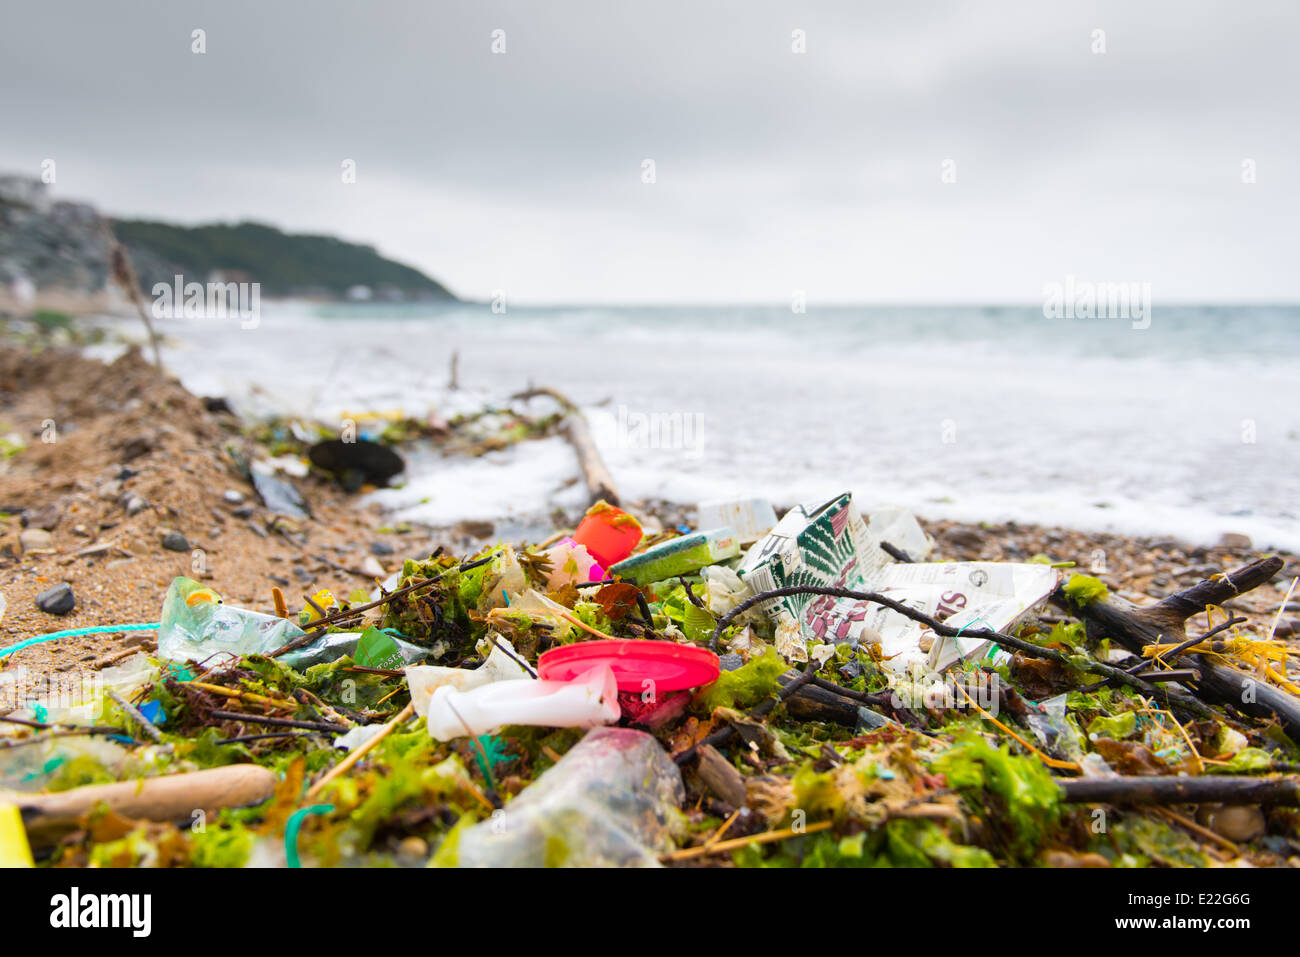 Plastic bags, bottles, and containers washed up on the beach. - Stock Image